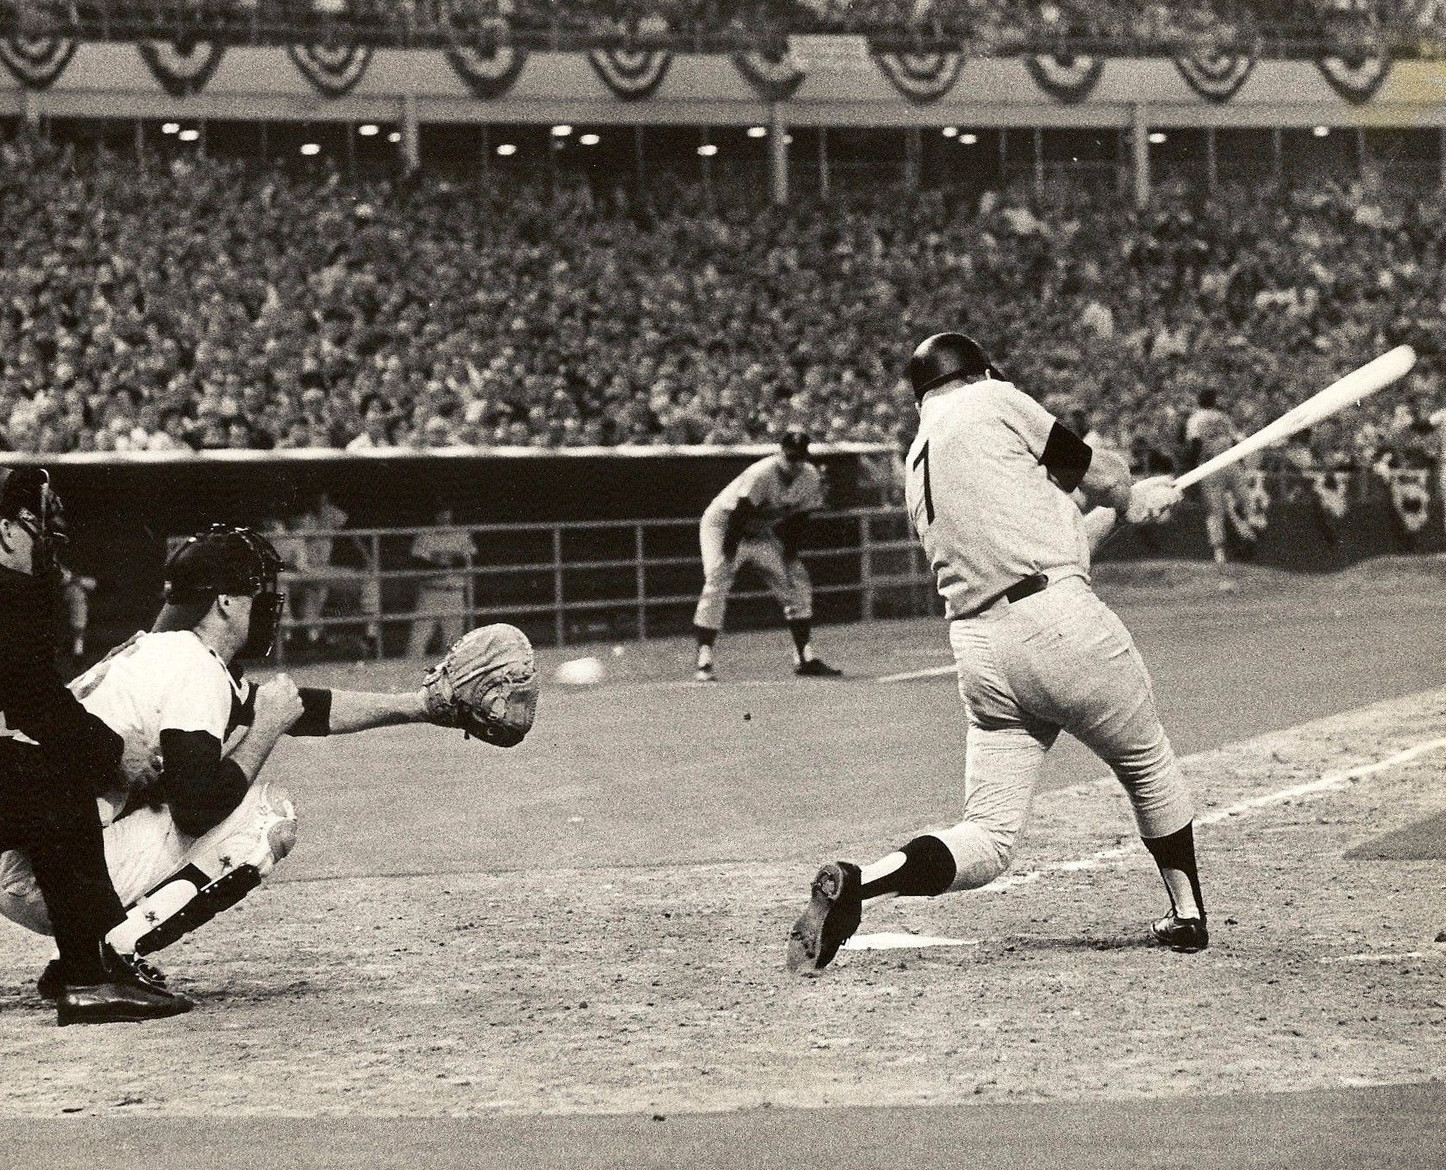 Mickey Mantle's Final All Star Game - July 9, 1968